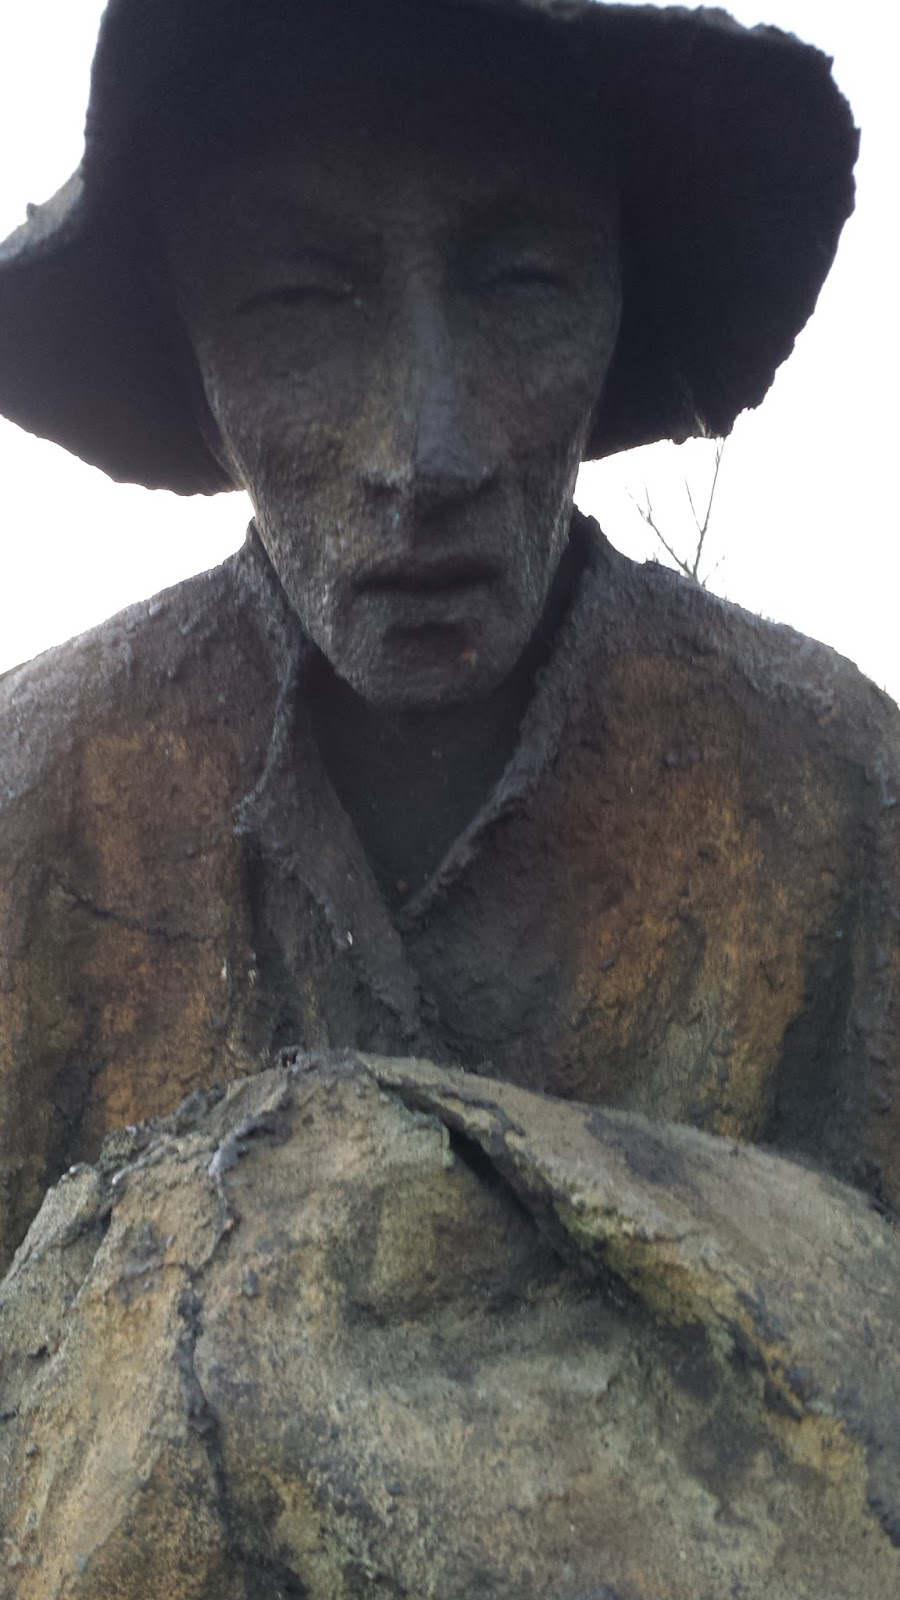 essays on irish famine Researcher who was interested in the irish famine or in irish literature and   williams's scholarly collection of revisionist essays entitled the great famine.